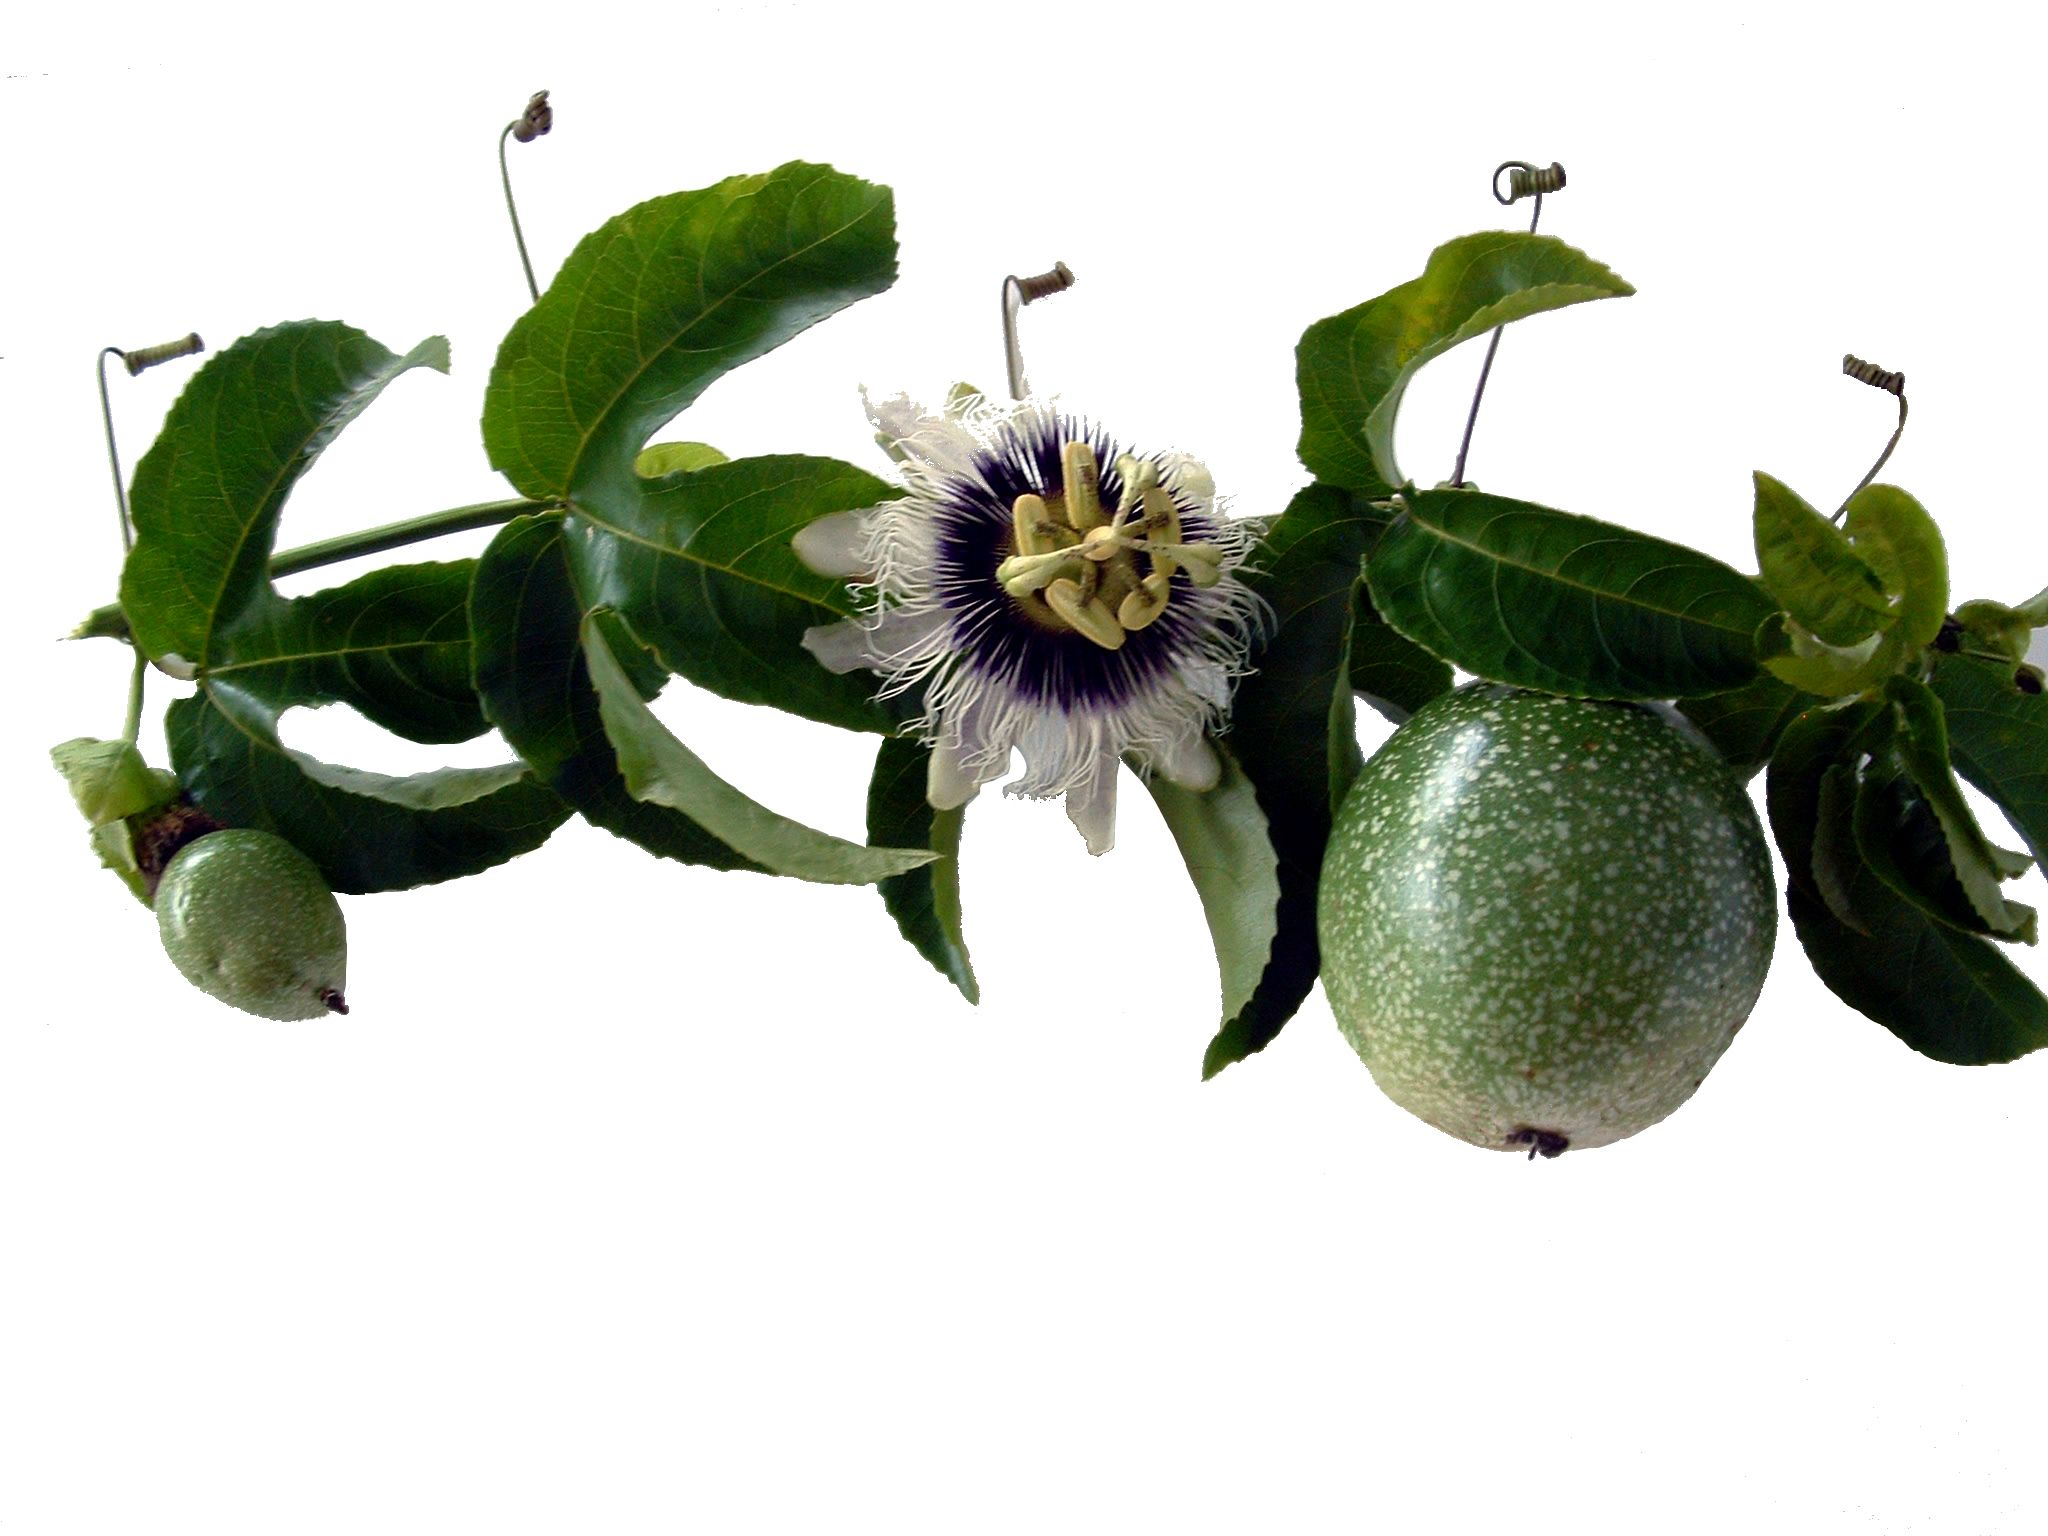 The Passion Flower Passion Fruit Juice Passion Flower Unusual Flowers